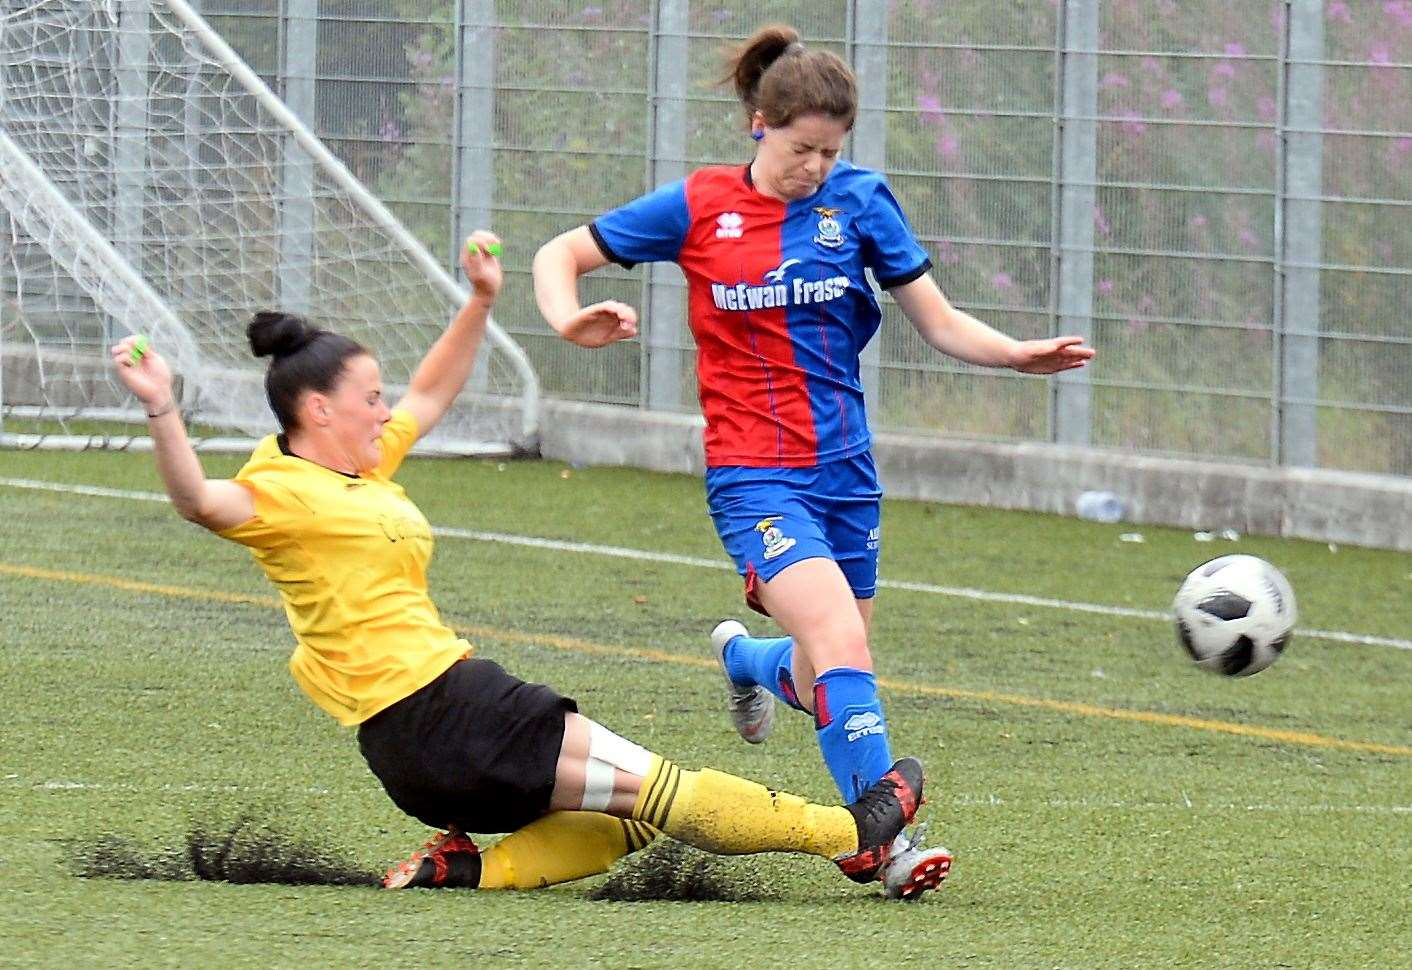 Inverness Caledonian Thistle aim for Scottish Cup upset